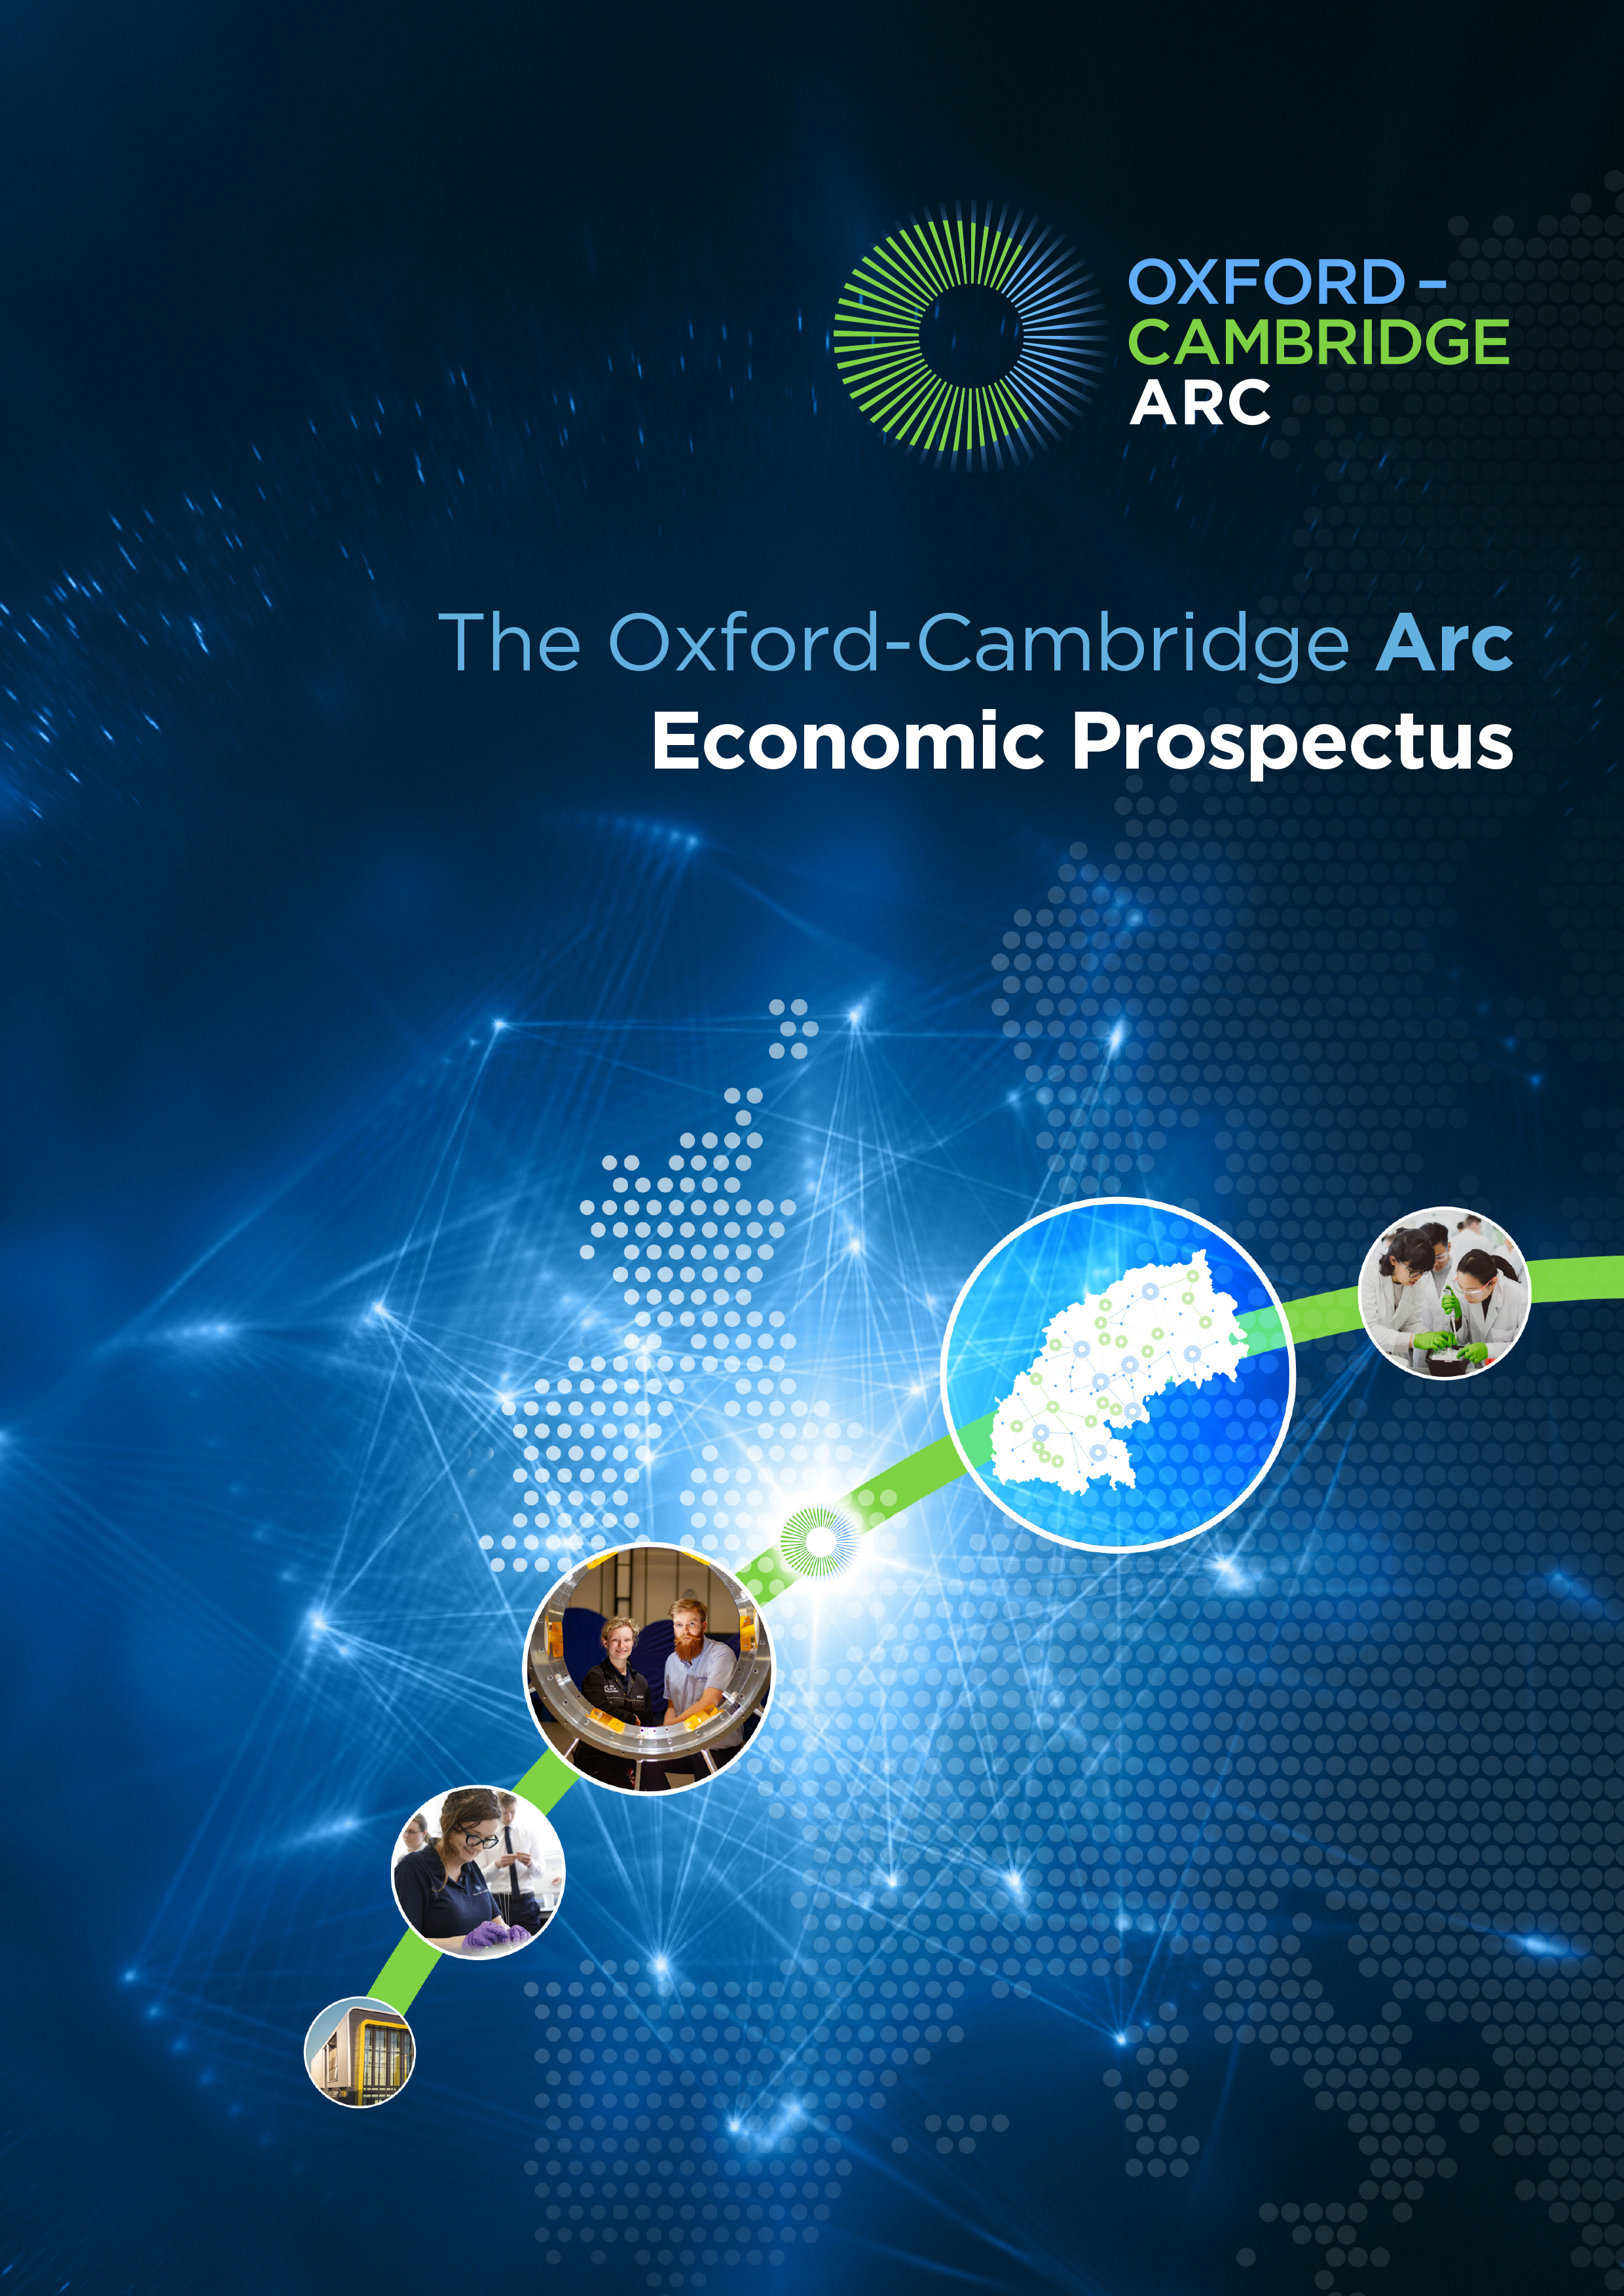 Front cover image for the Oxford-Cambridge Arc Economic Prospectus